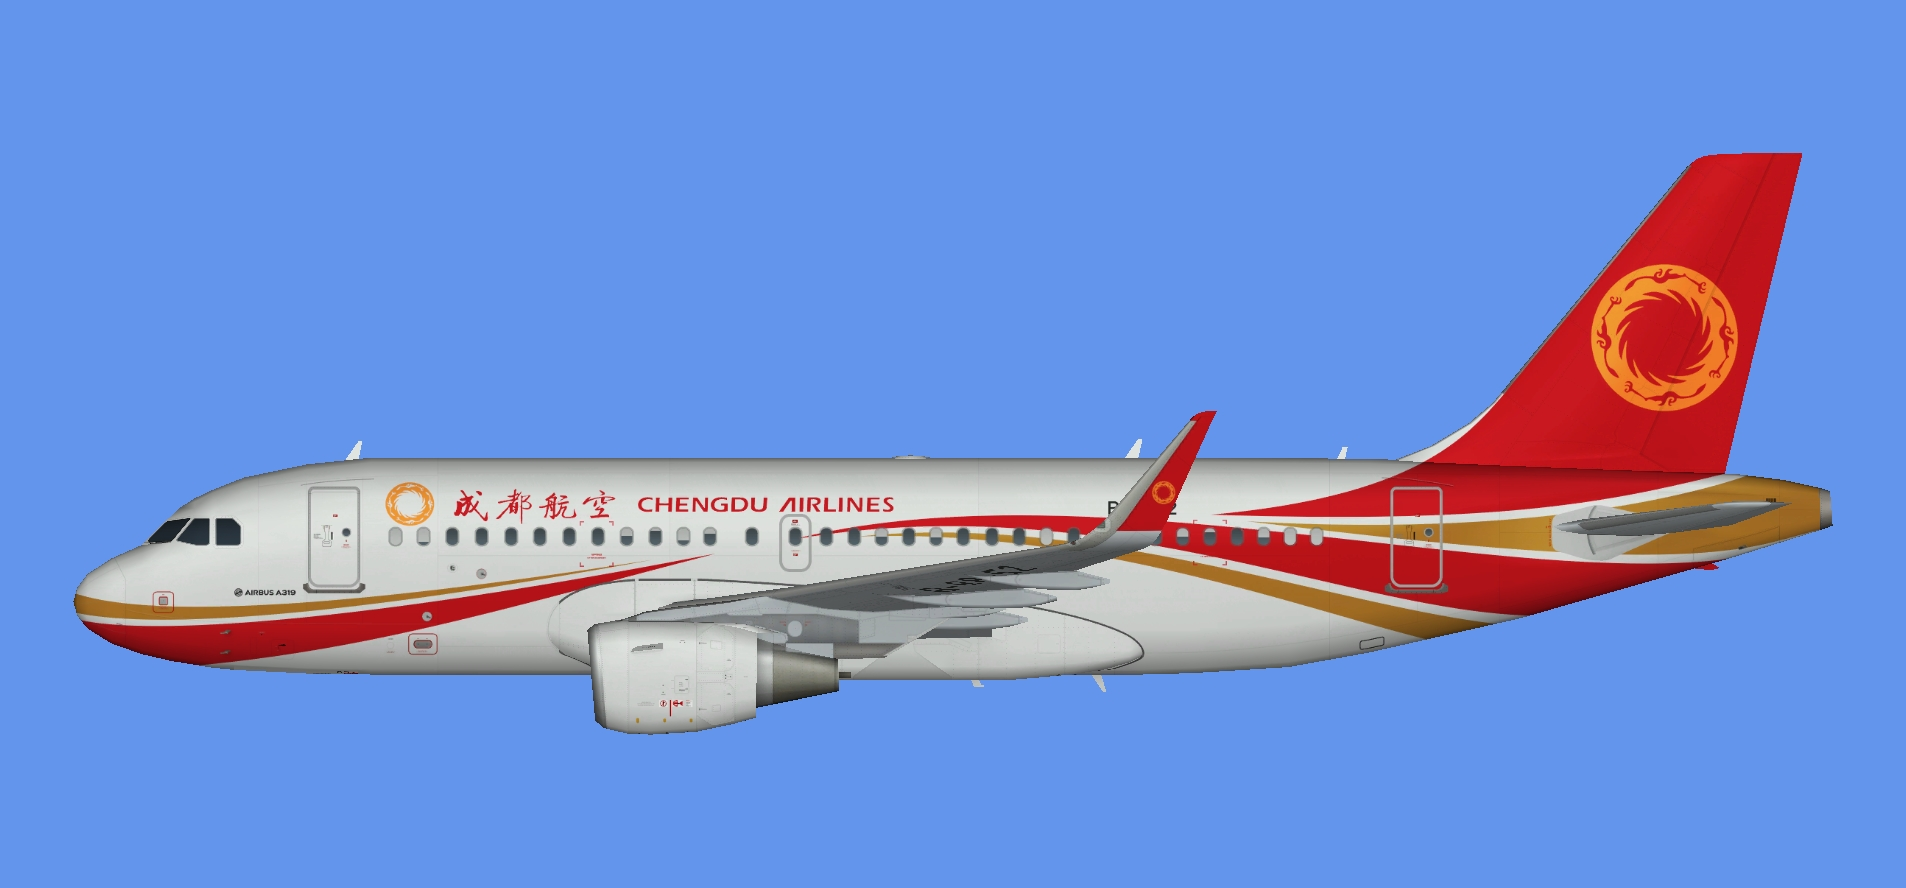 Chengdu Airlines A319 (sharklets)